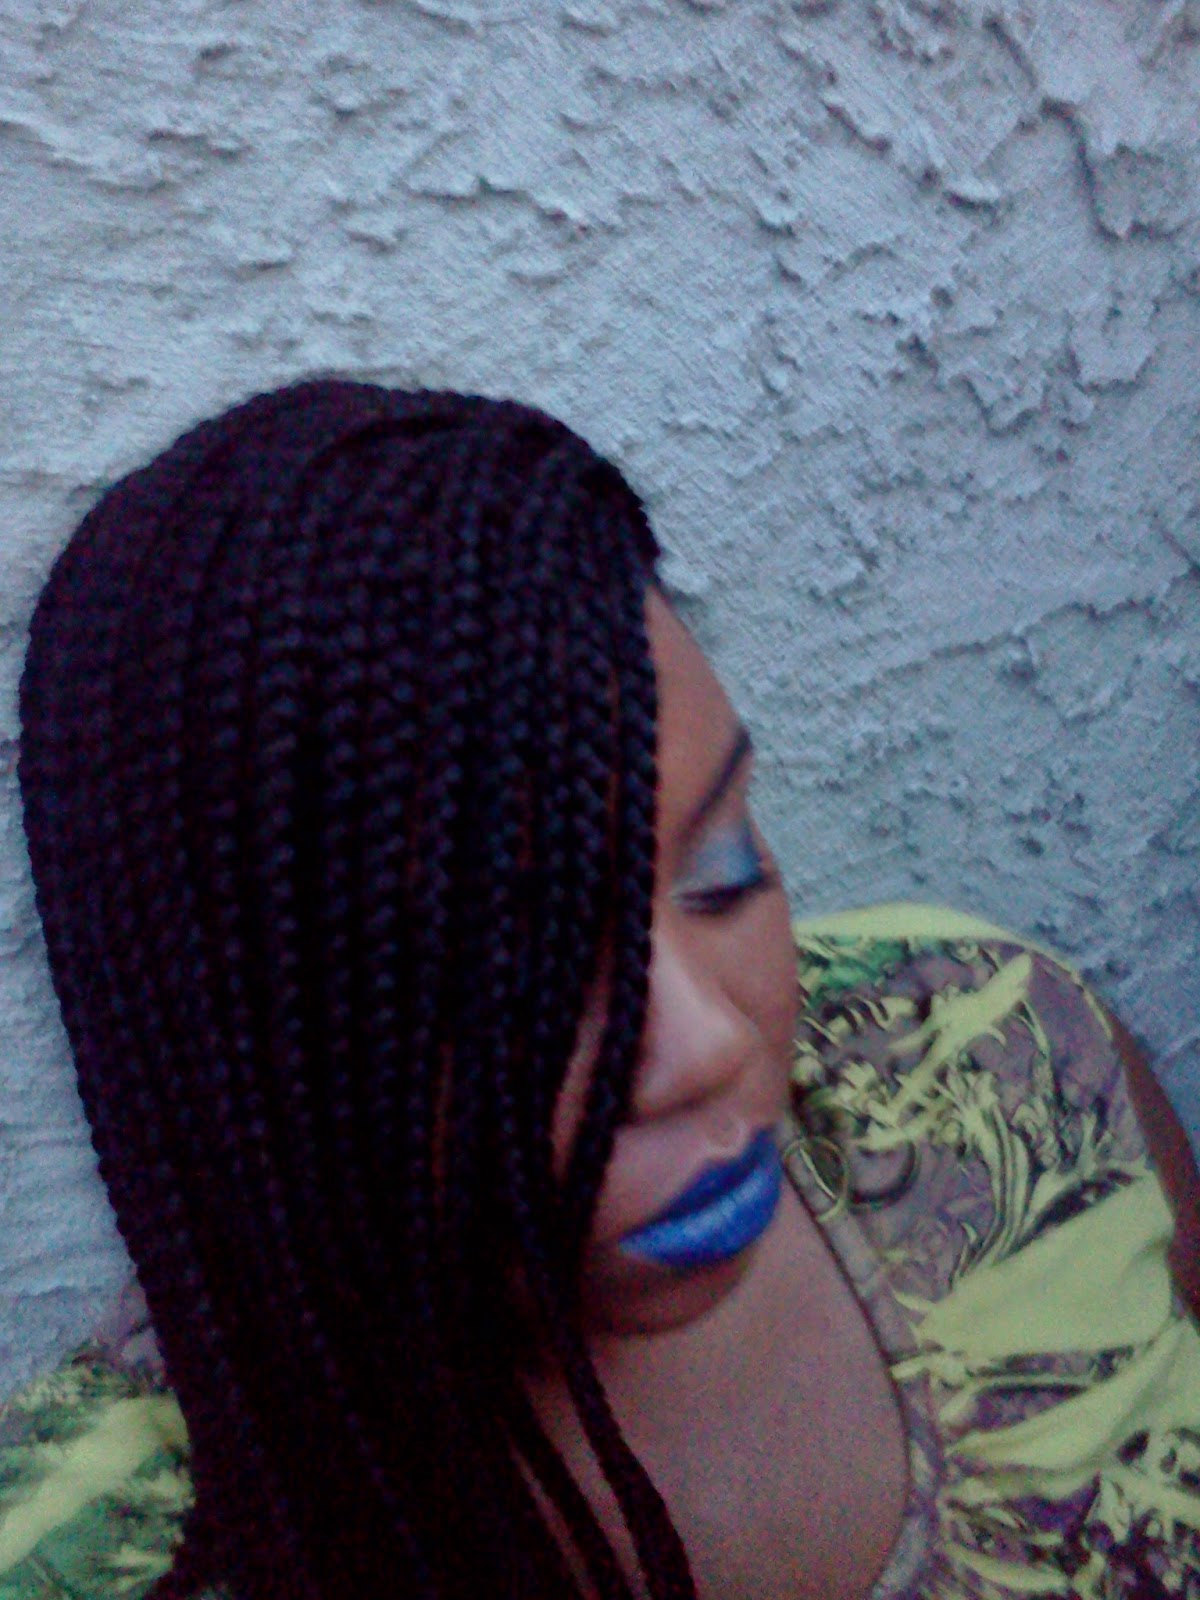 Ebony's All Natural: Box Braids & Blue Lips